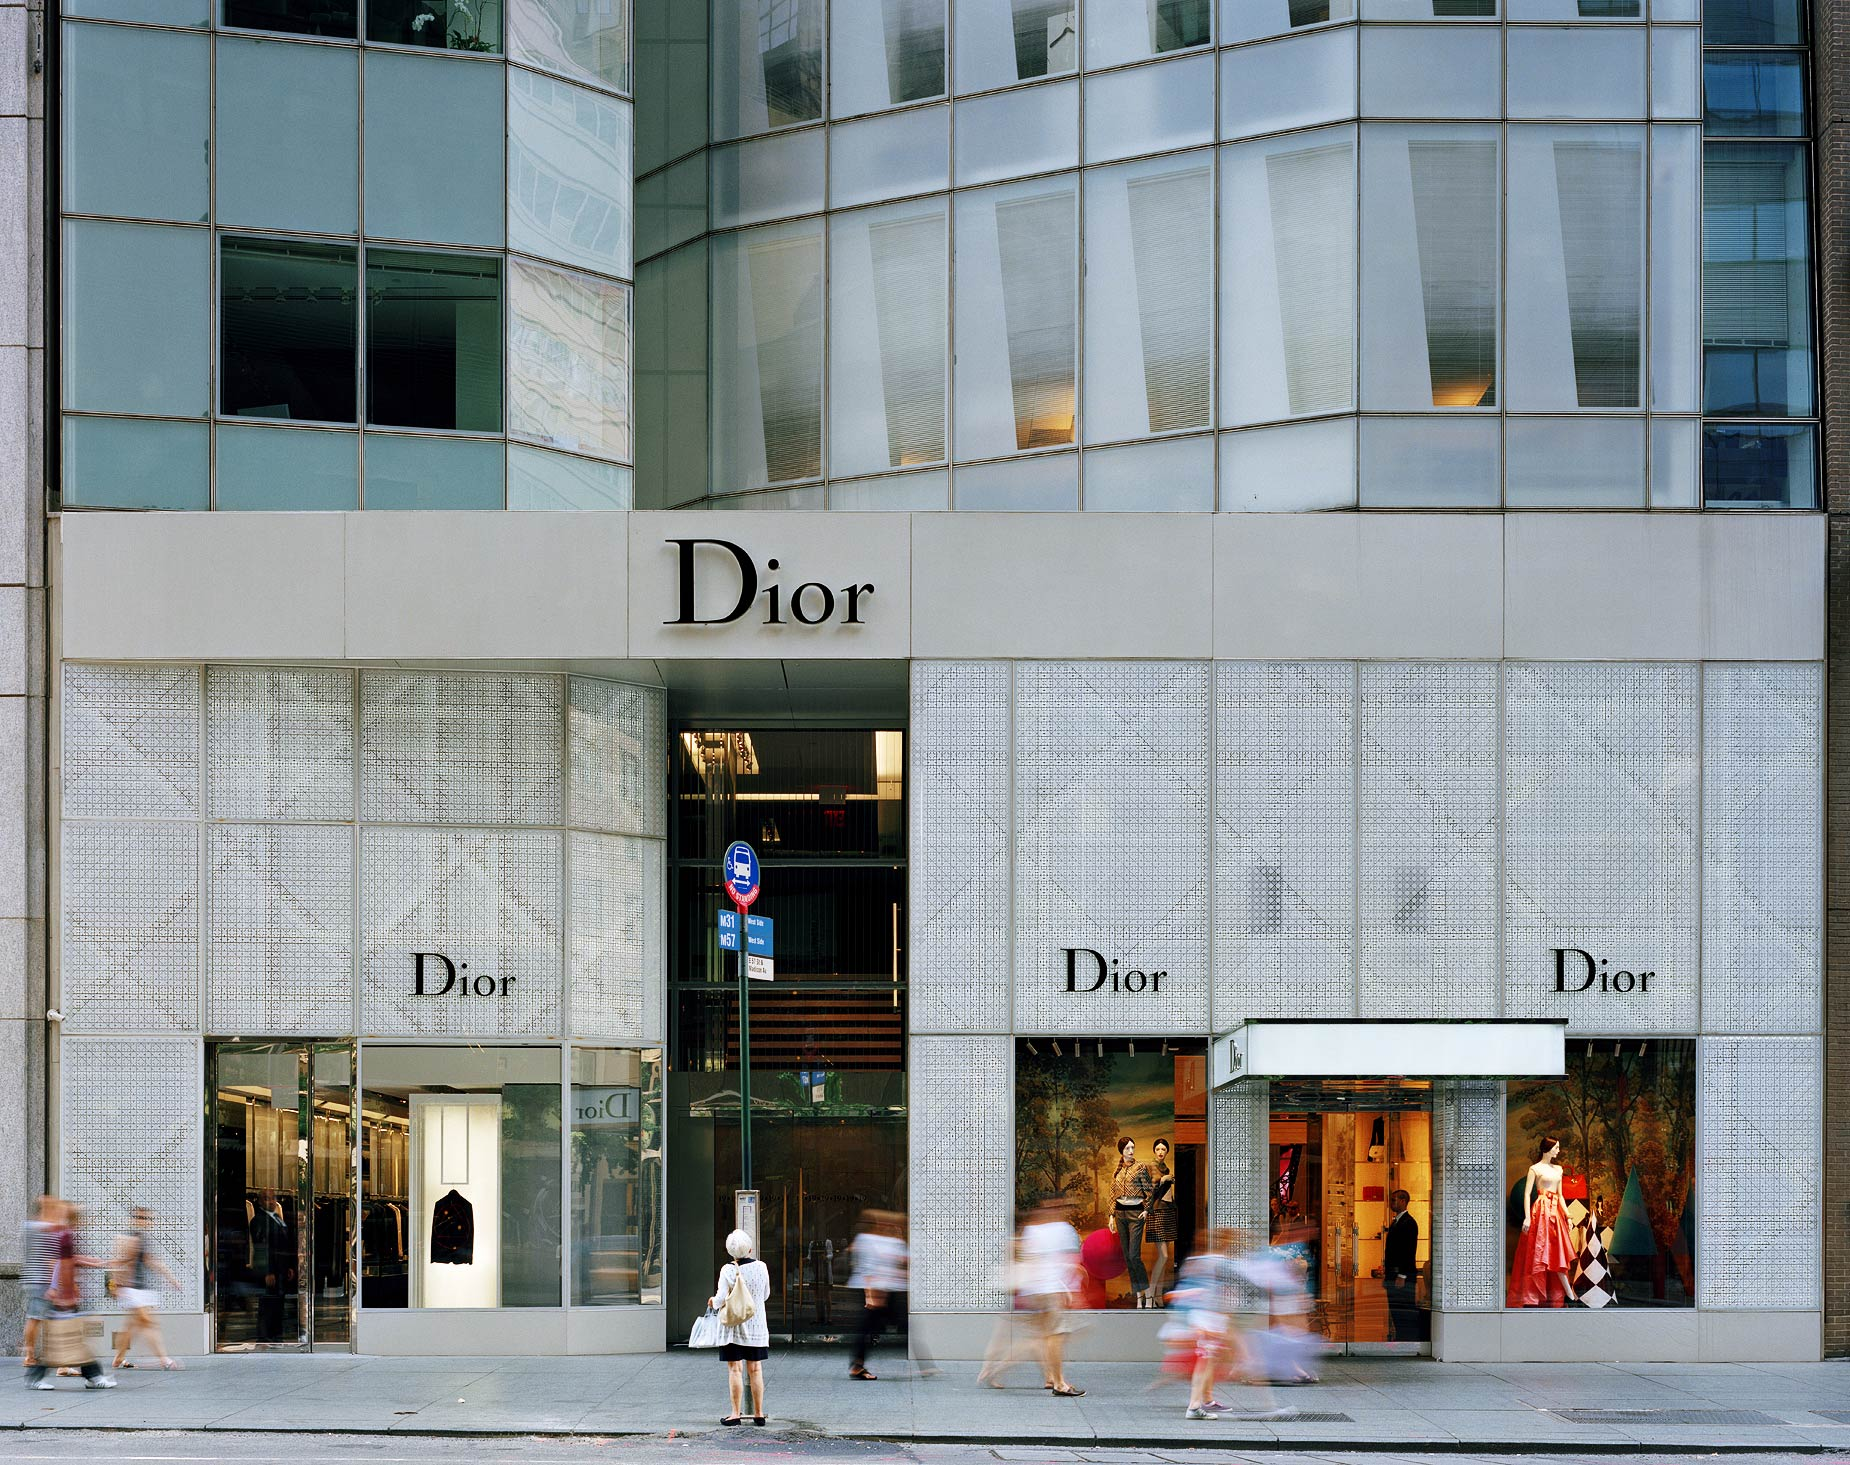 Dior, 21 East 57th Street, New York, New York